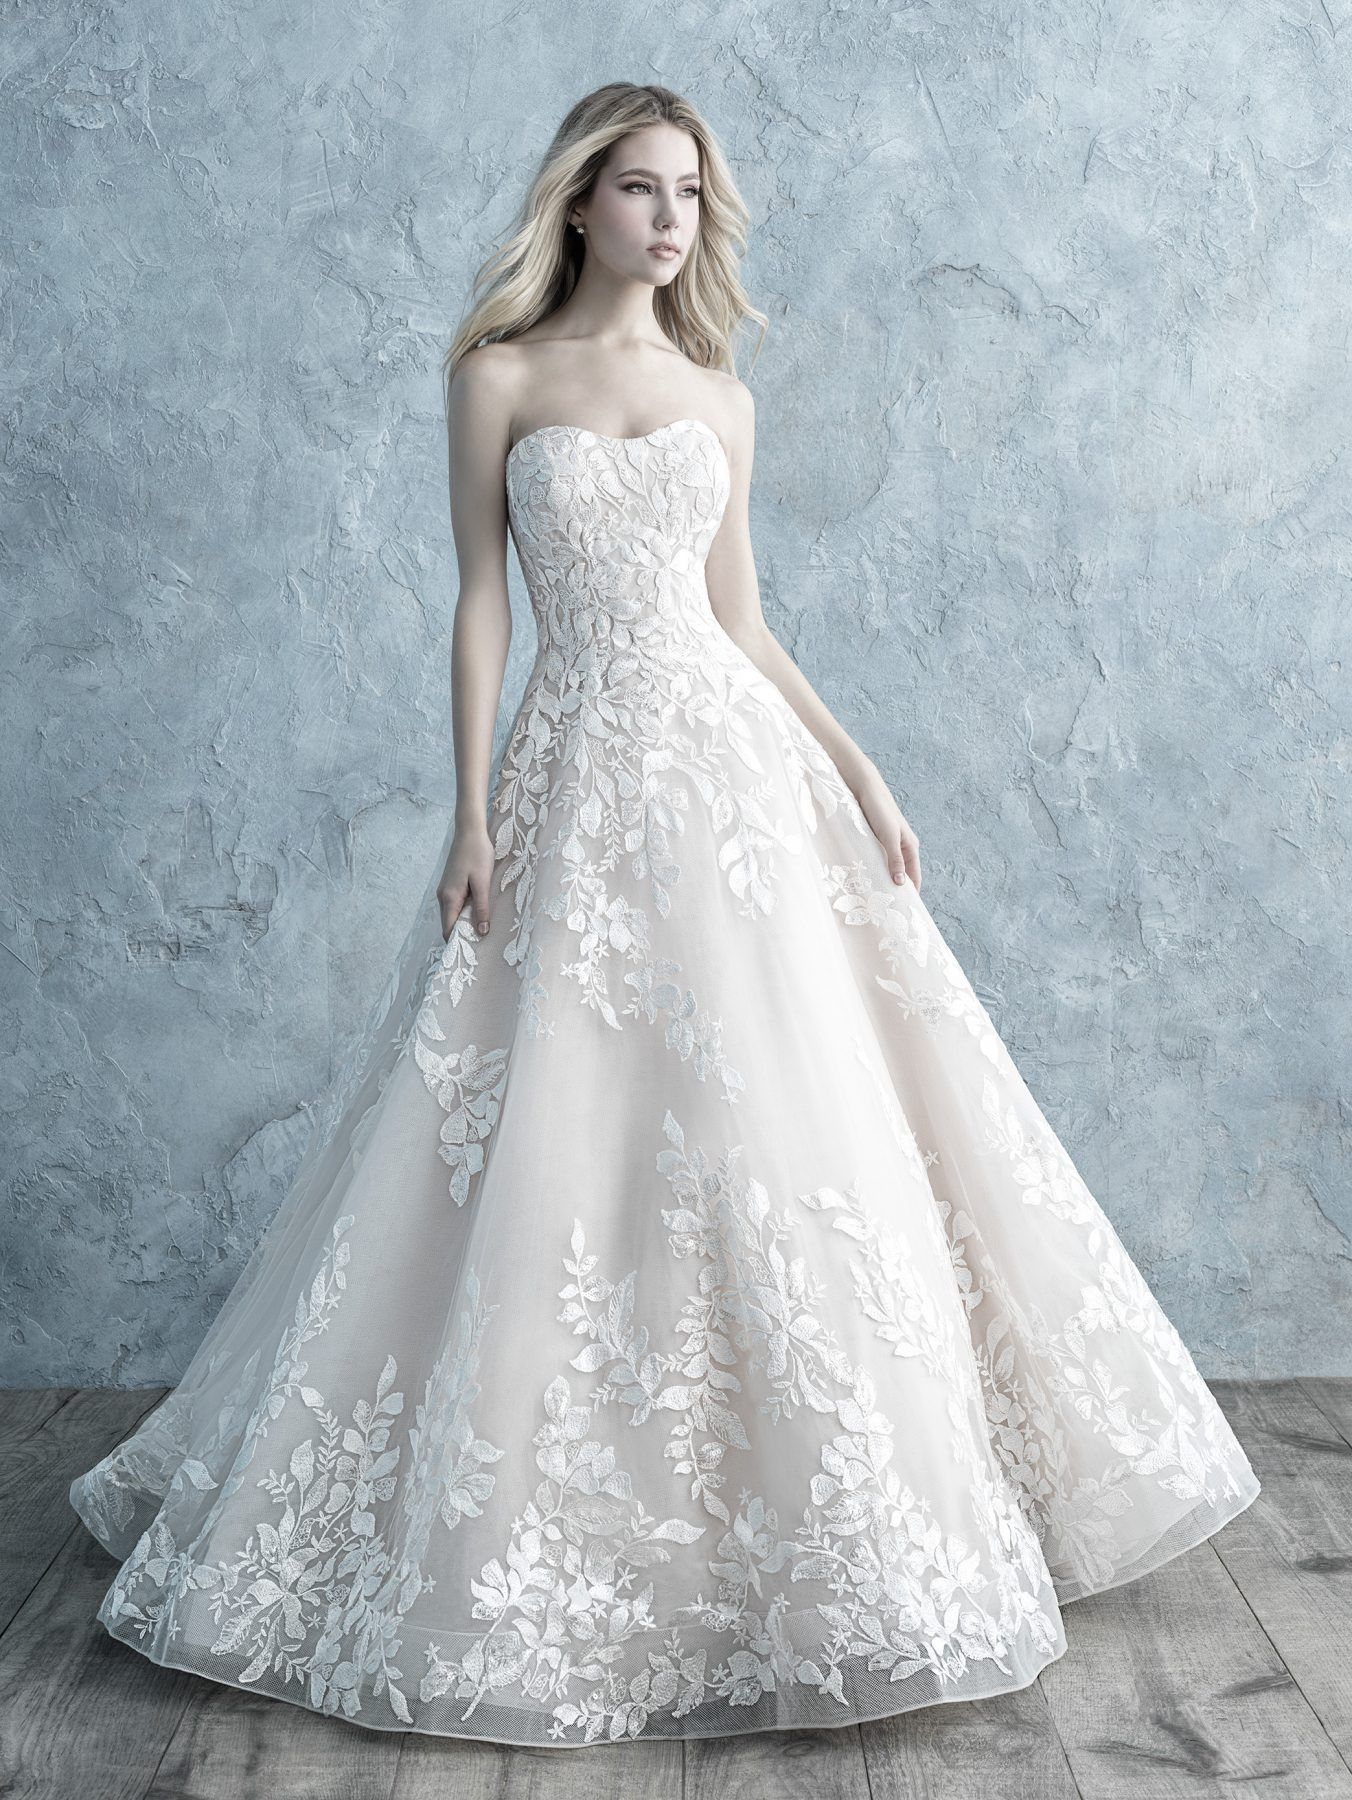 Strapless Sweetheart Floral Lace Applique Ball Gown Wedding Dress Kleinfeld Bridal Allure Wedding Dresses Allure Bridal Ball Gown Wedding Dress